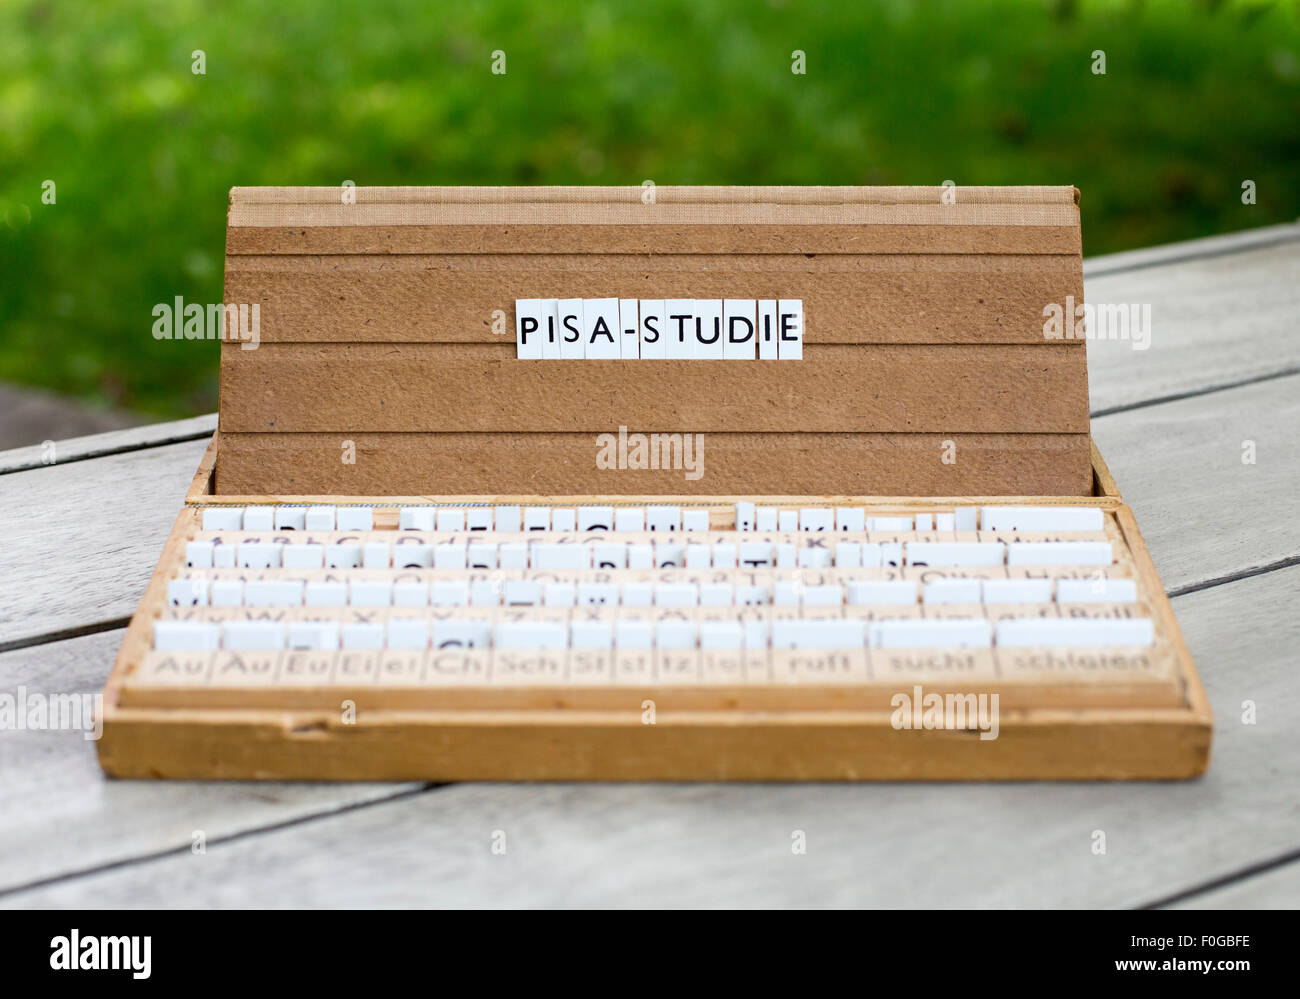 "a letterbox with the german word: ""Pisa-Studie"" (pisa-study) Stock Photo"